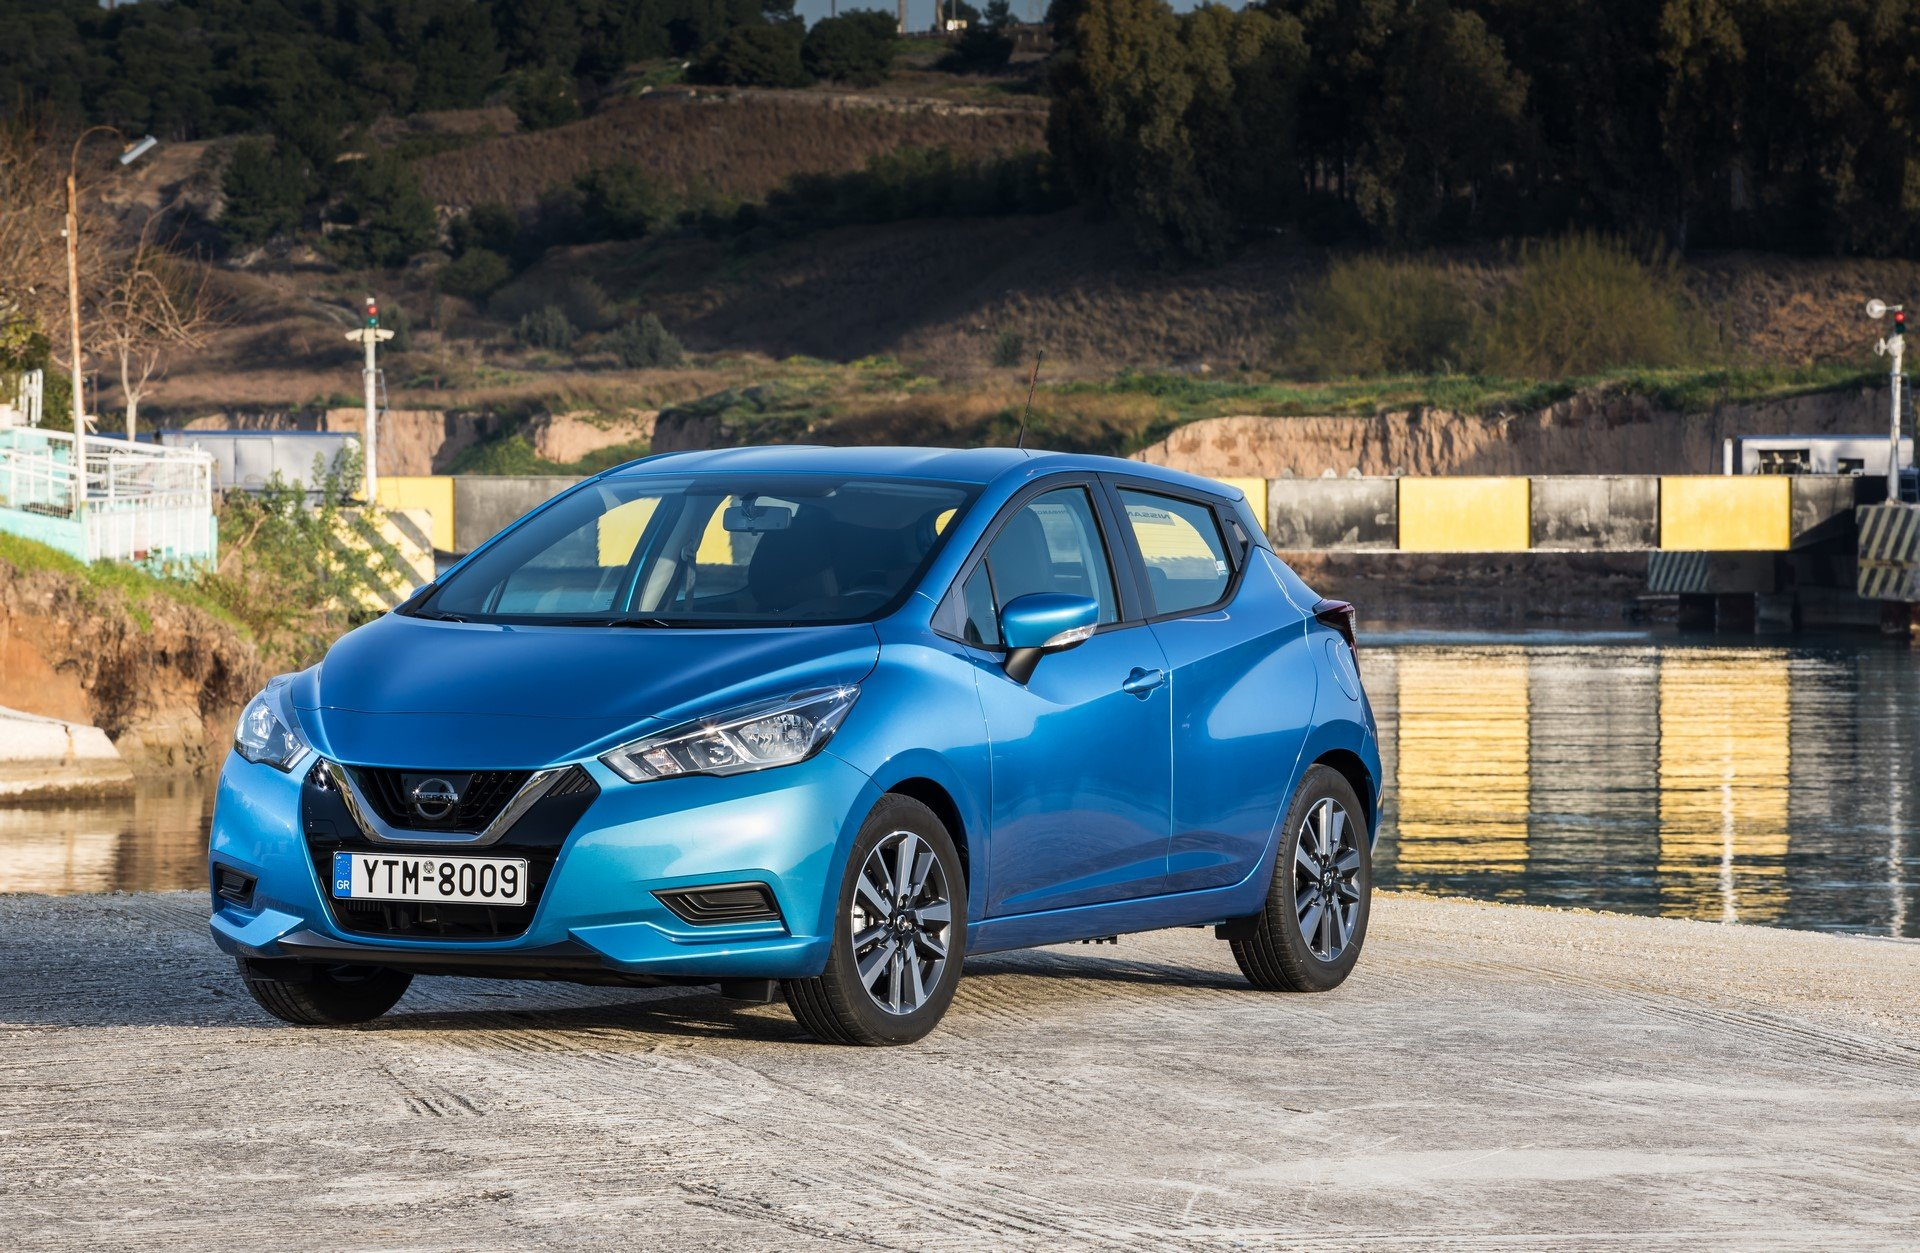 Nissan Micra 2019 Greek (13)